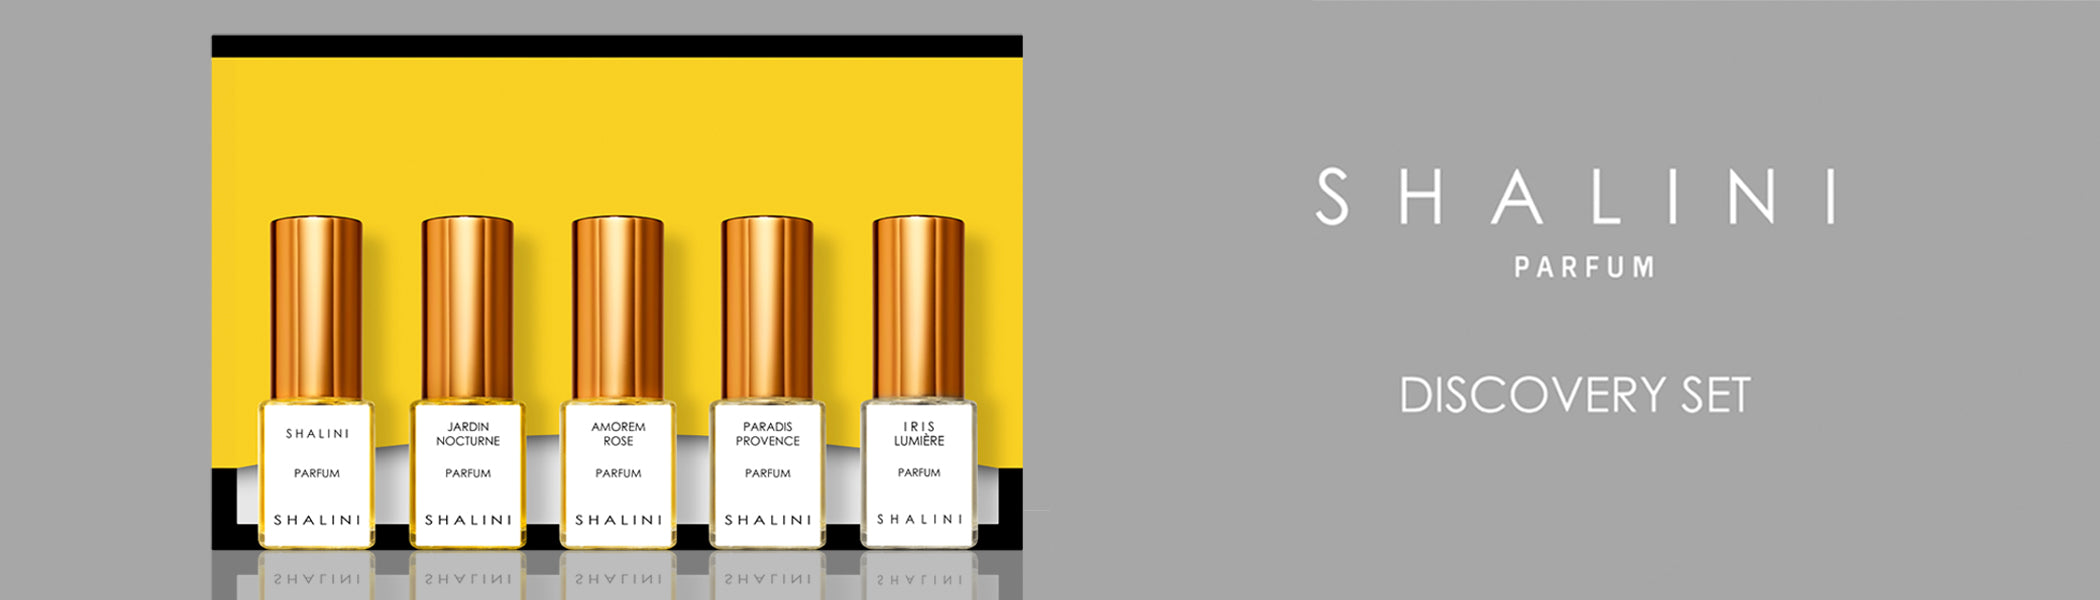 Shalini Parfums Discovery Set Collection | Neverabore.com